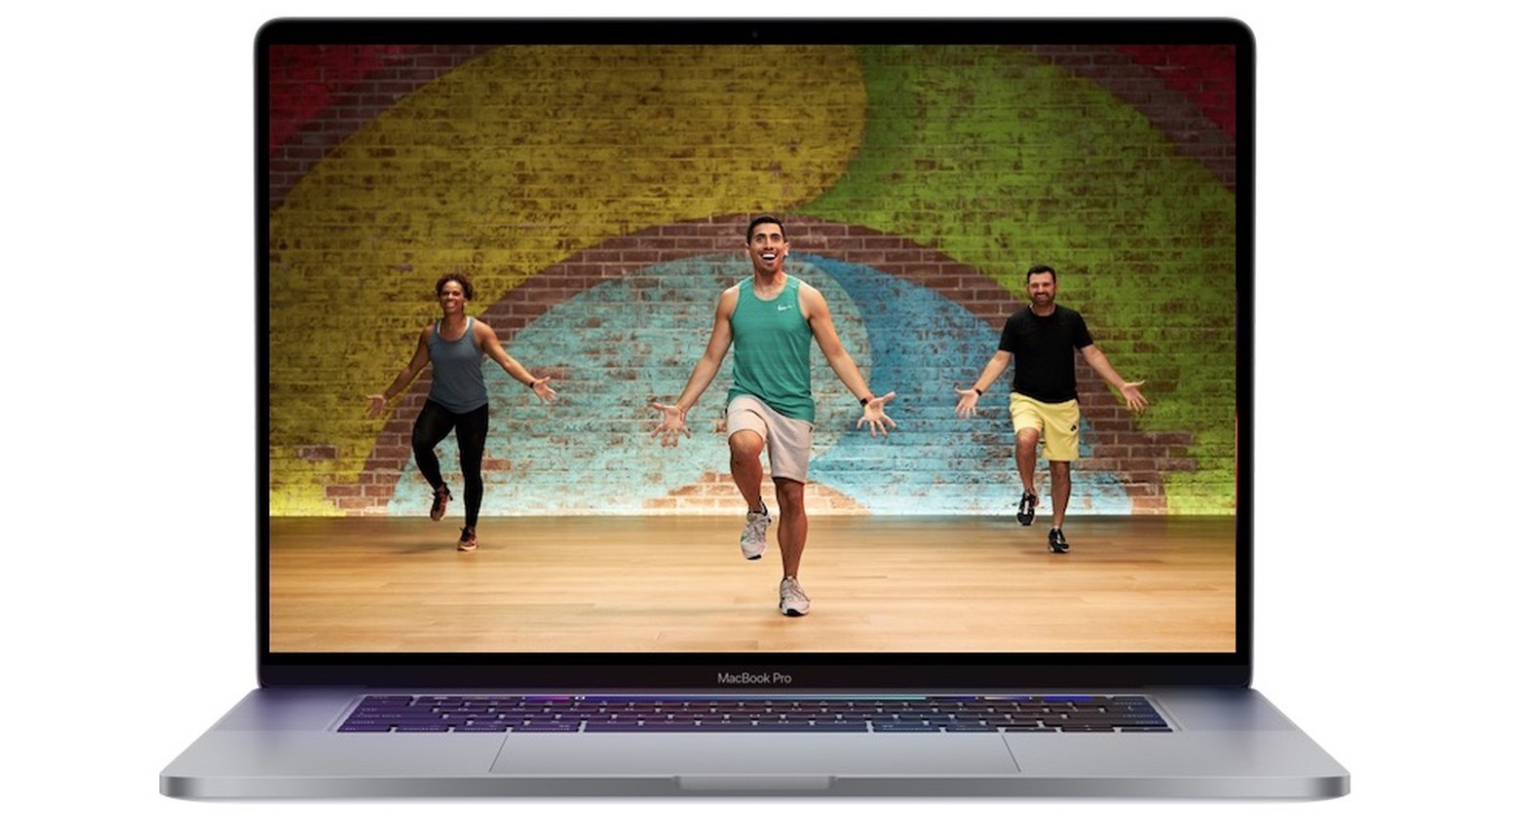 Apple Fitness+ on macOS Monterey gets AirPlay support